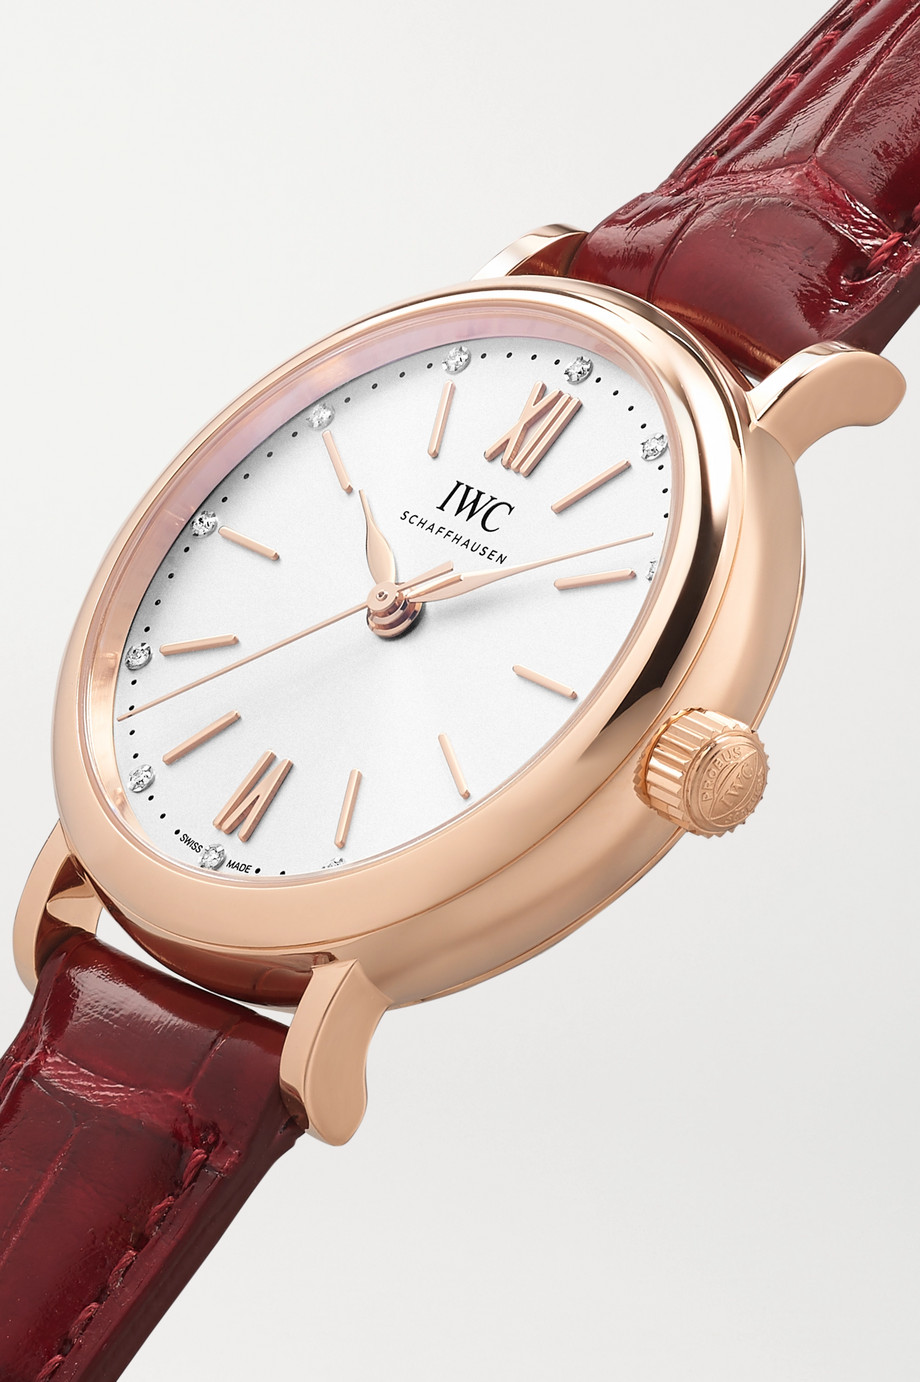 IWC SCHAFFHAUSEN Portofino Automatic 34mm 18-karat red gold, alligator and diamond watch